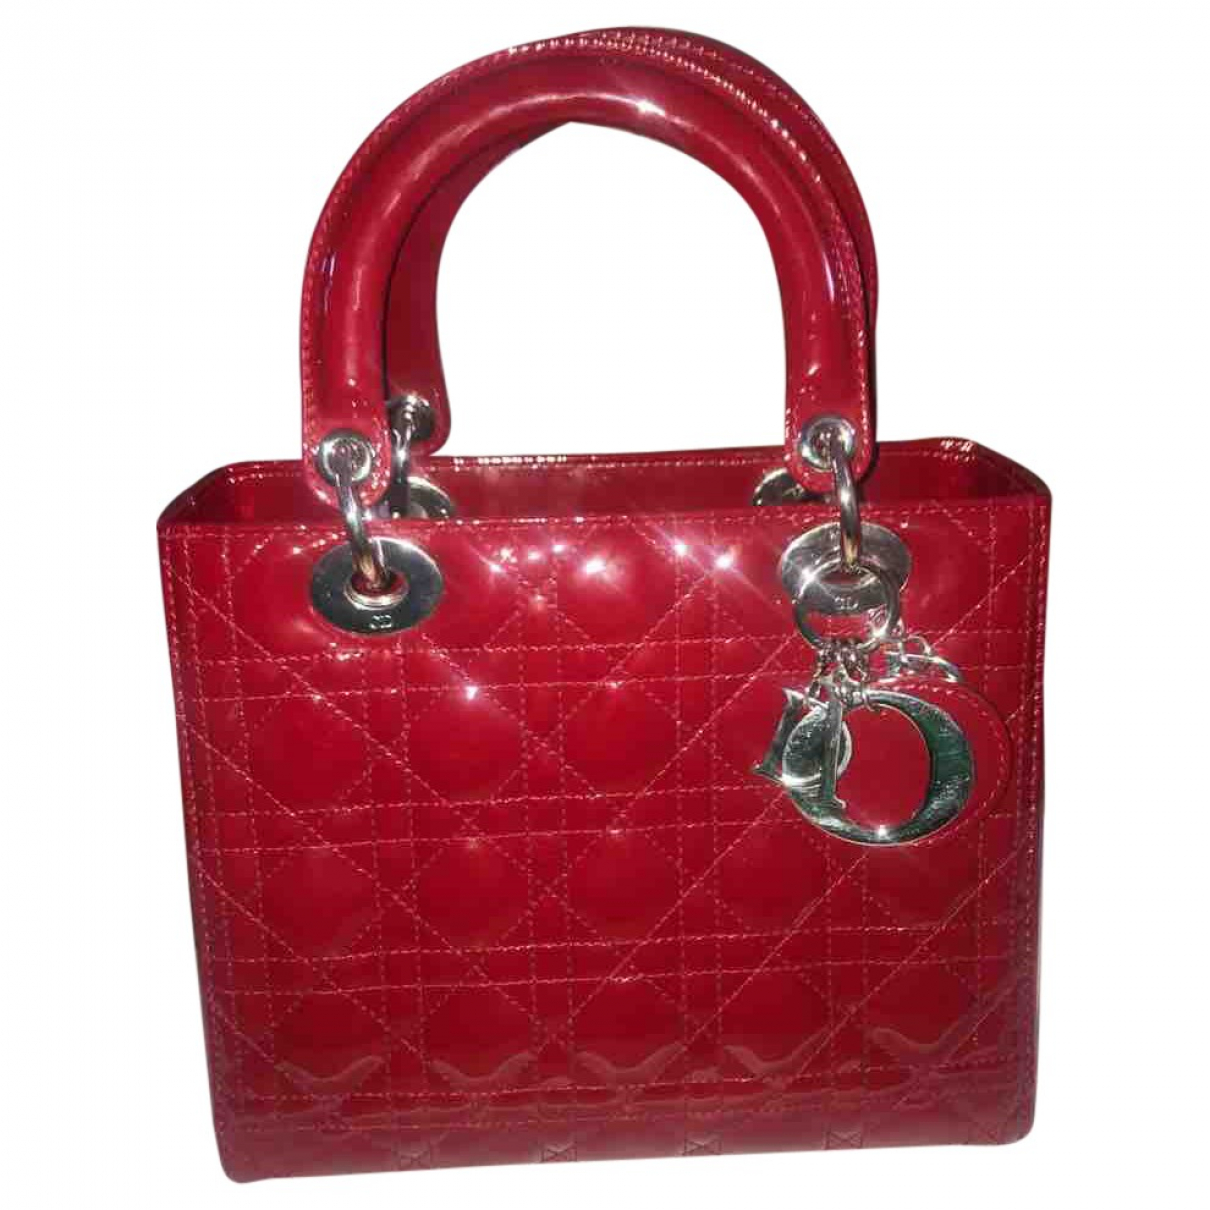 Dior Lady Dior Red Patent leather handbag for Women \N